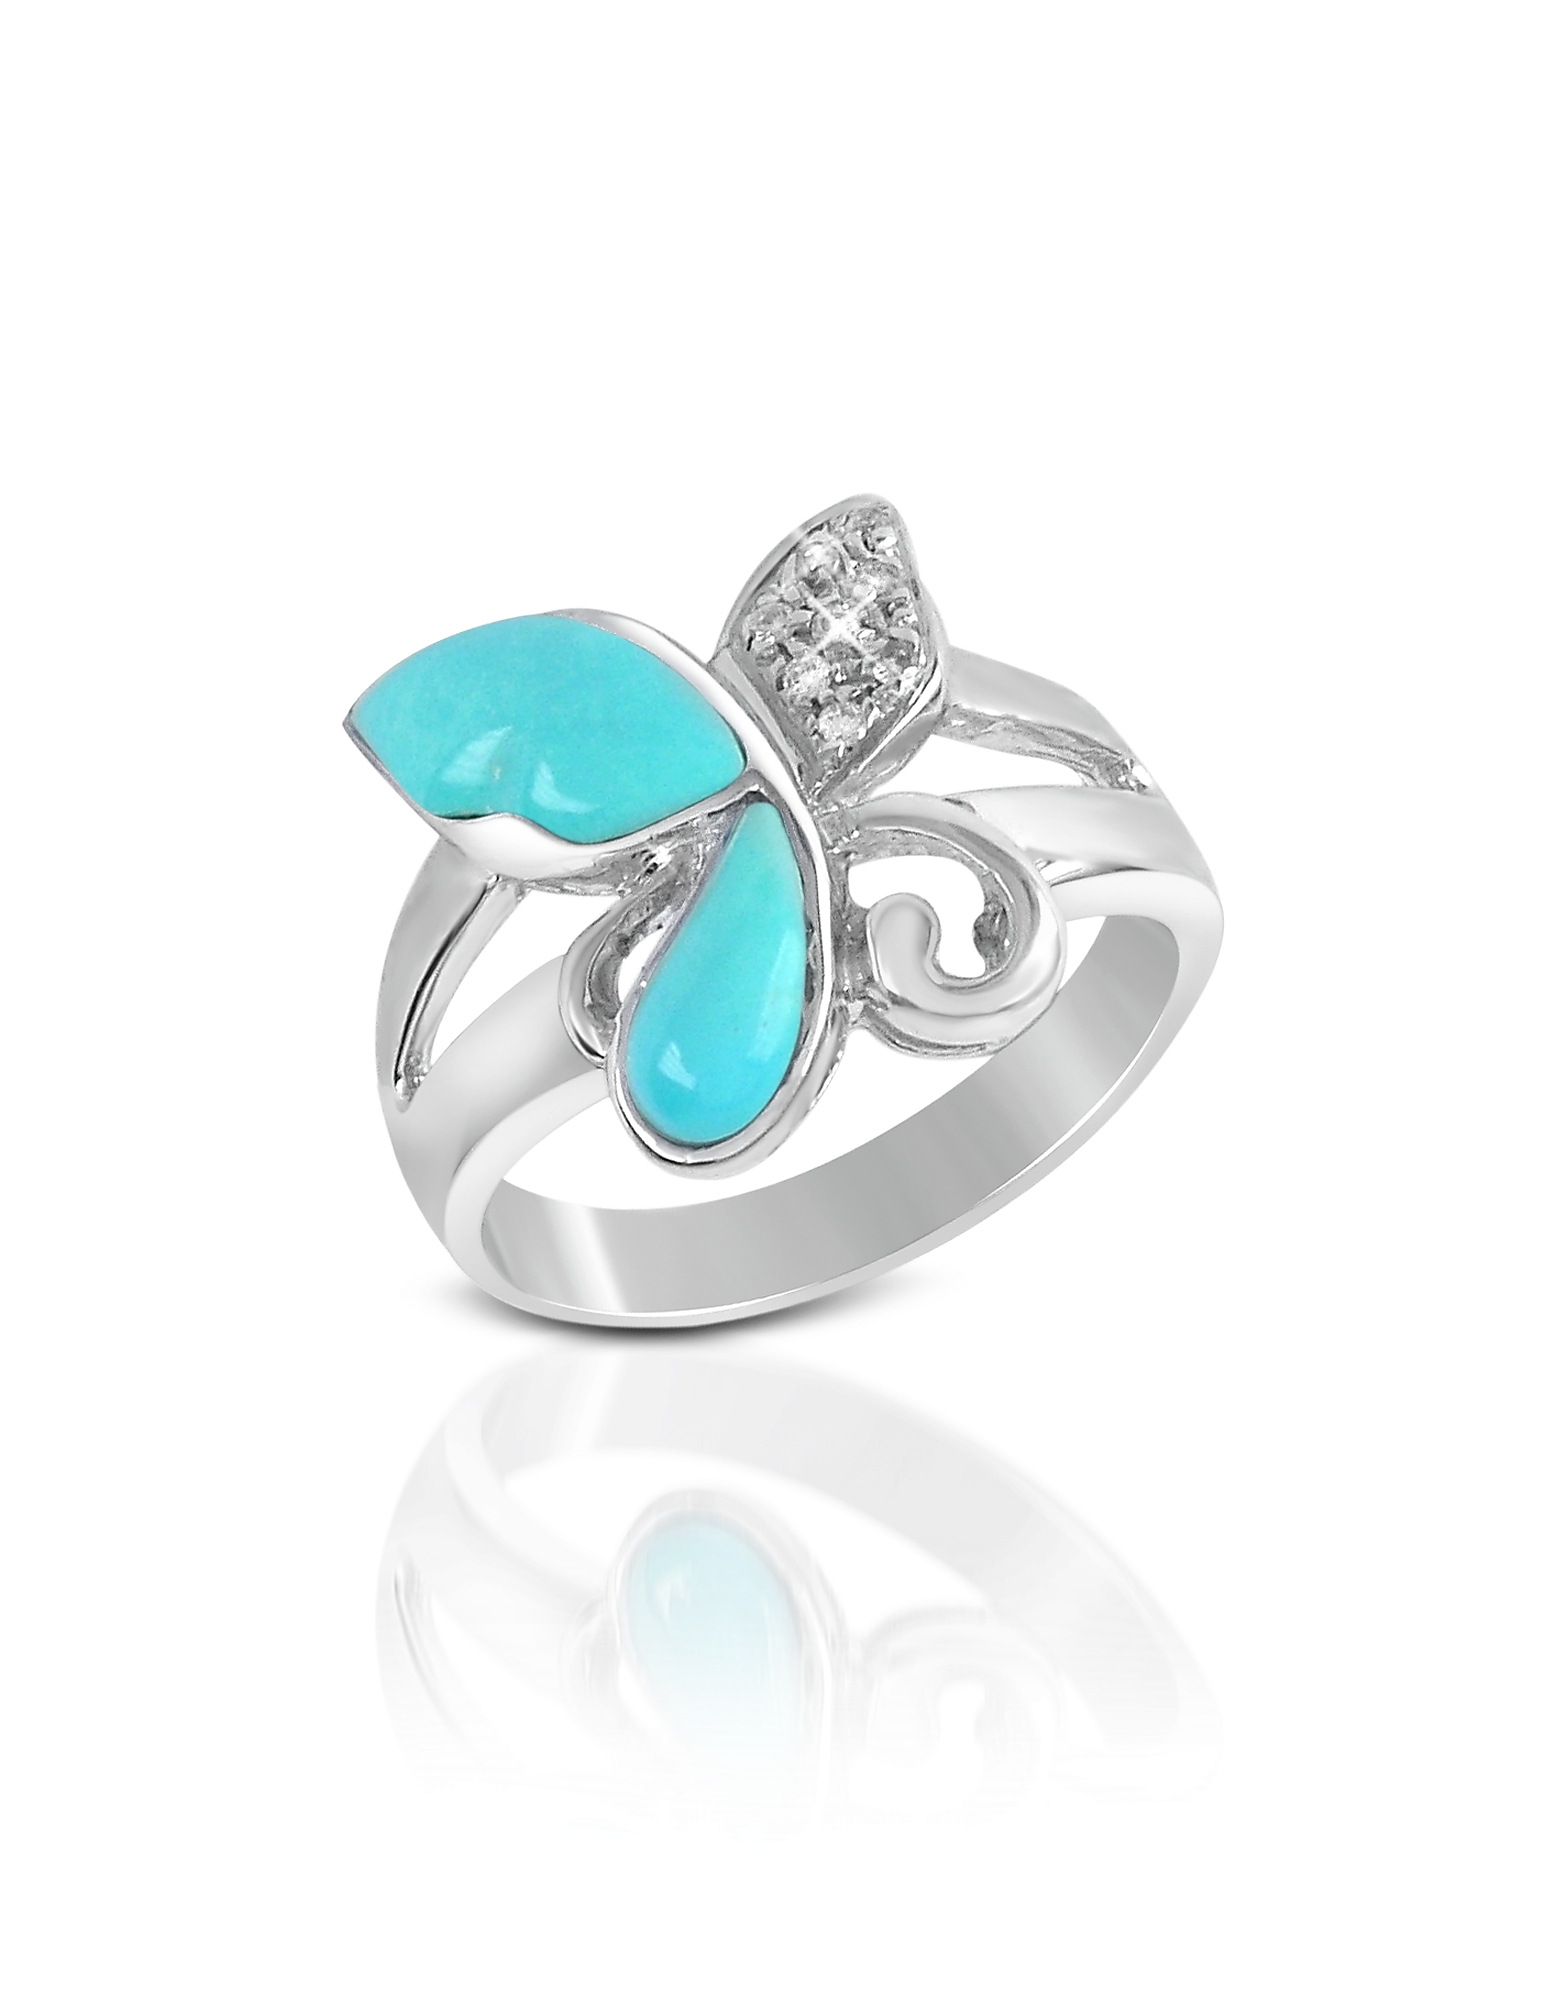 Del Gatto Designer Rings, Diamond and Turquoise Butterfly 18K Gold Ring